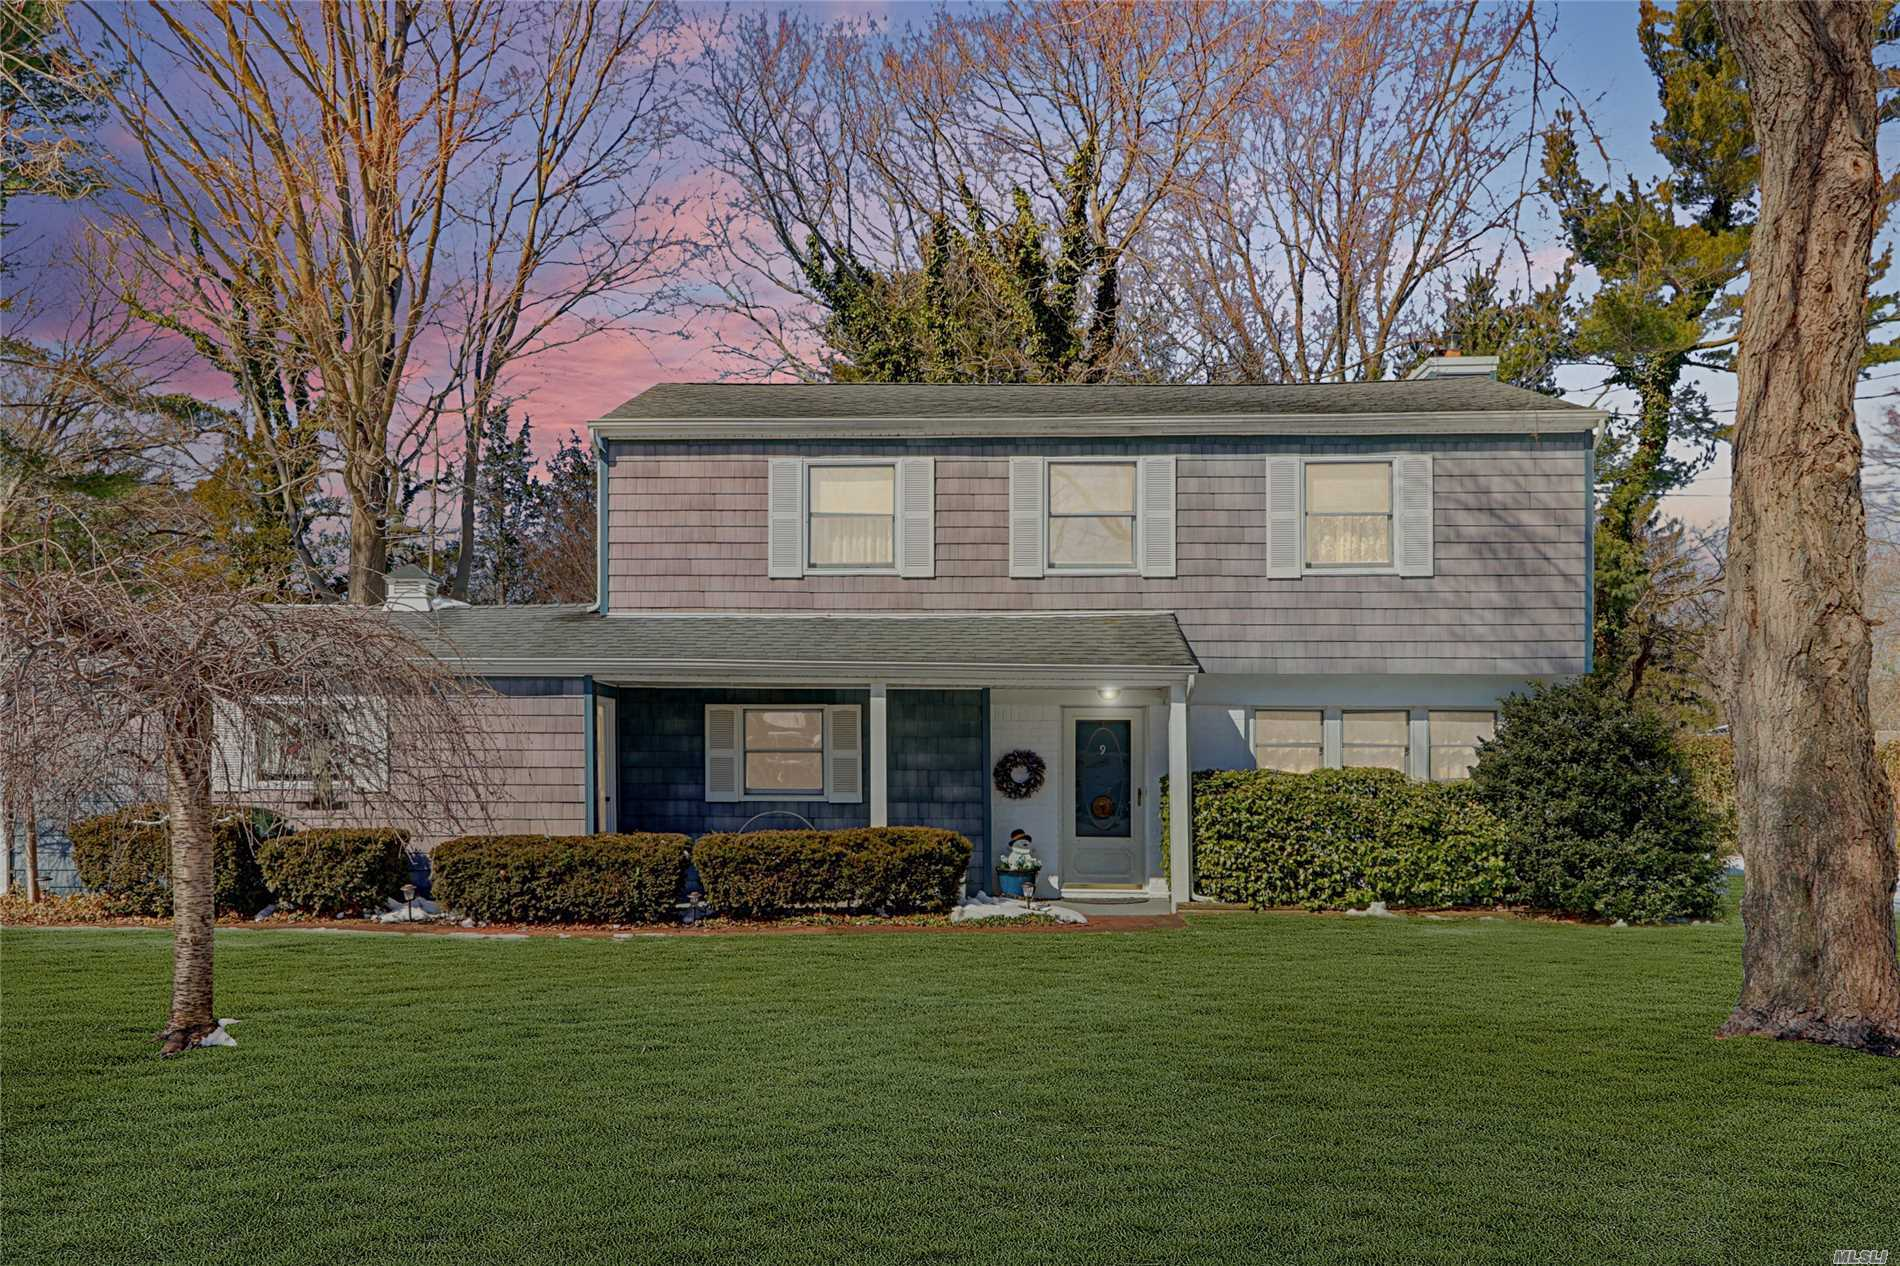 Harborfields Schools! 4 Bed/1.5 Bath Split Style Colonial, Bright & Open Family Room with Vaulted Ceilings and Fireplace Overlooking Shy Manicured 1/2 Acre, Gas Heating, Wood Floors. NEWER: Boiler & Hot Water Heater, Cesspool, Appliances. Quiet Mid-Block Location.